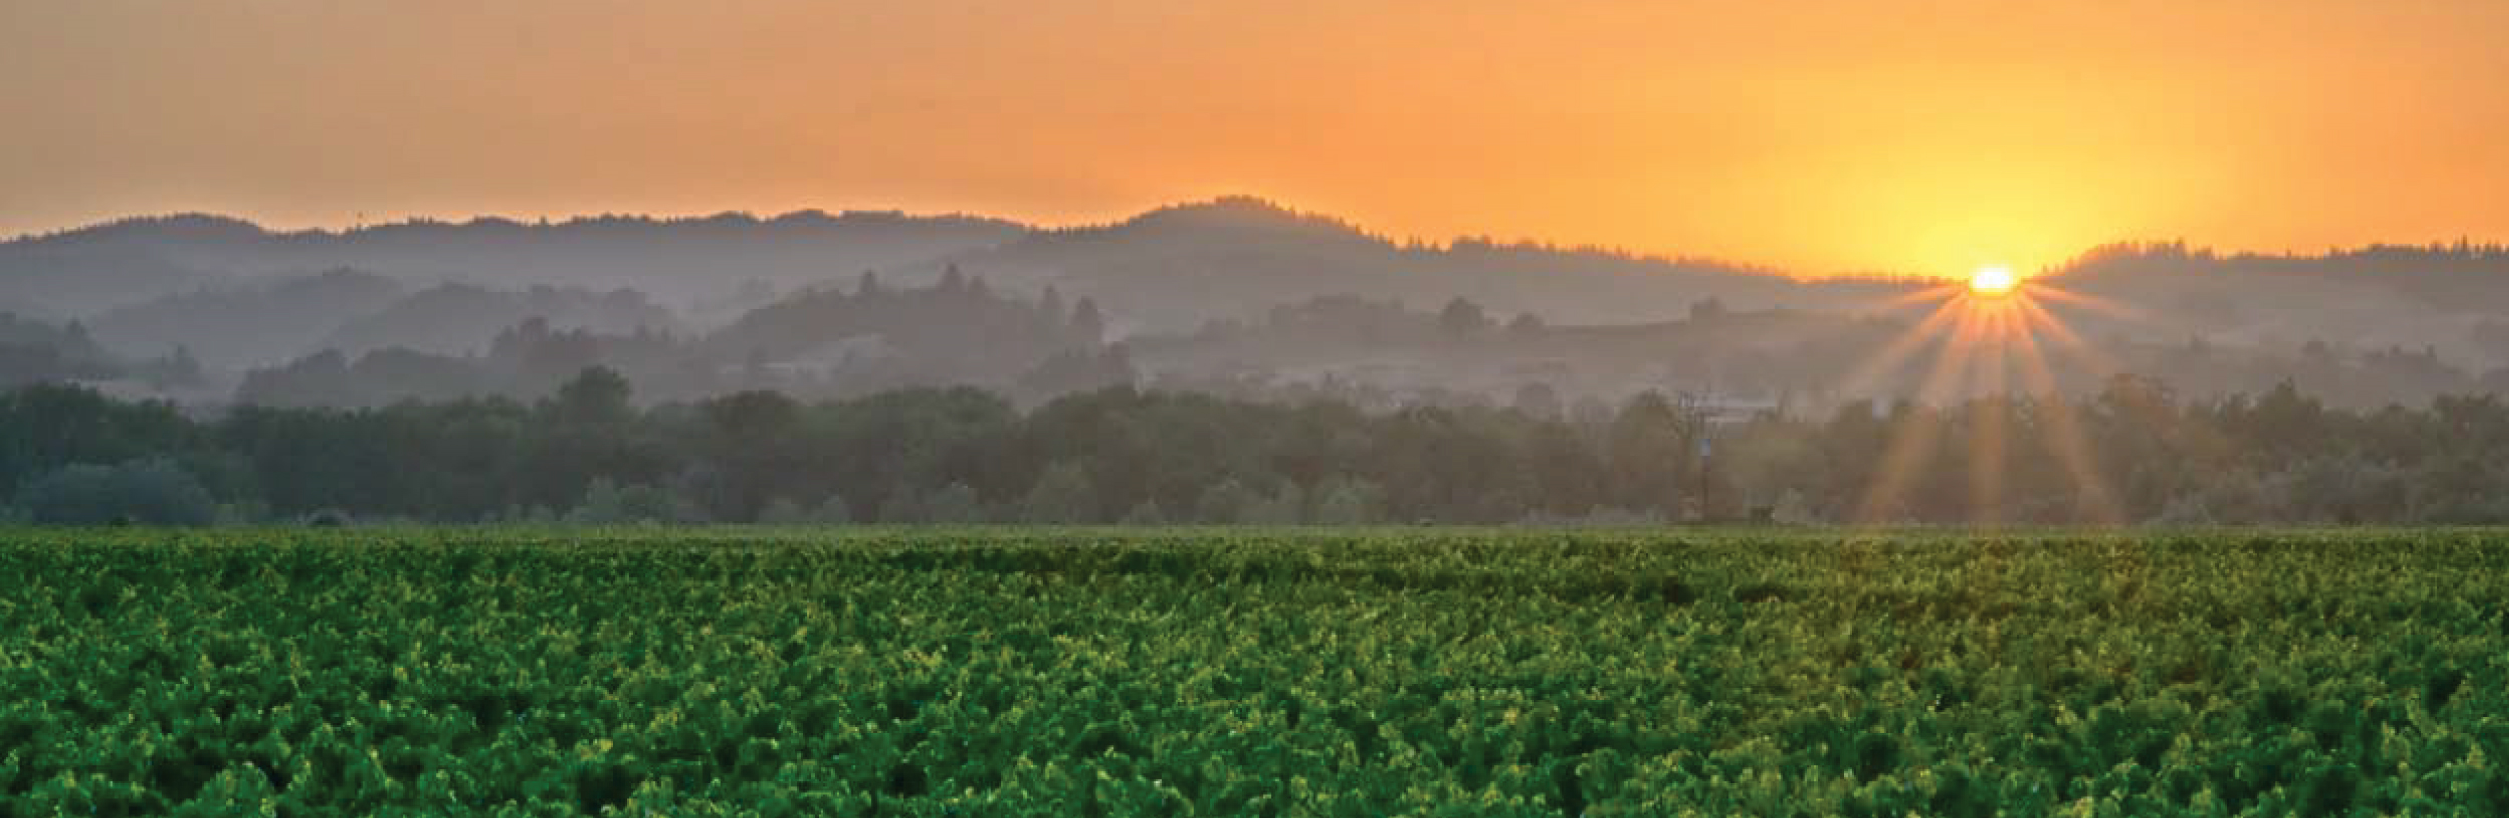 Sunrise over vineyard